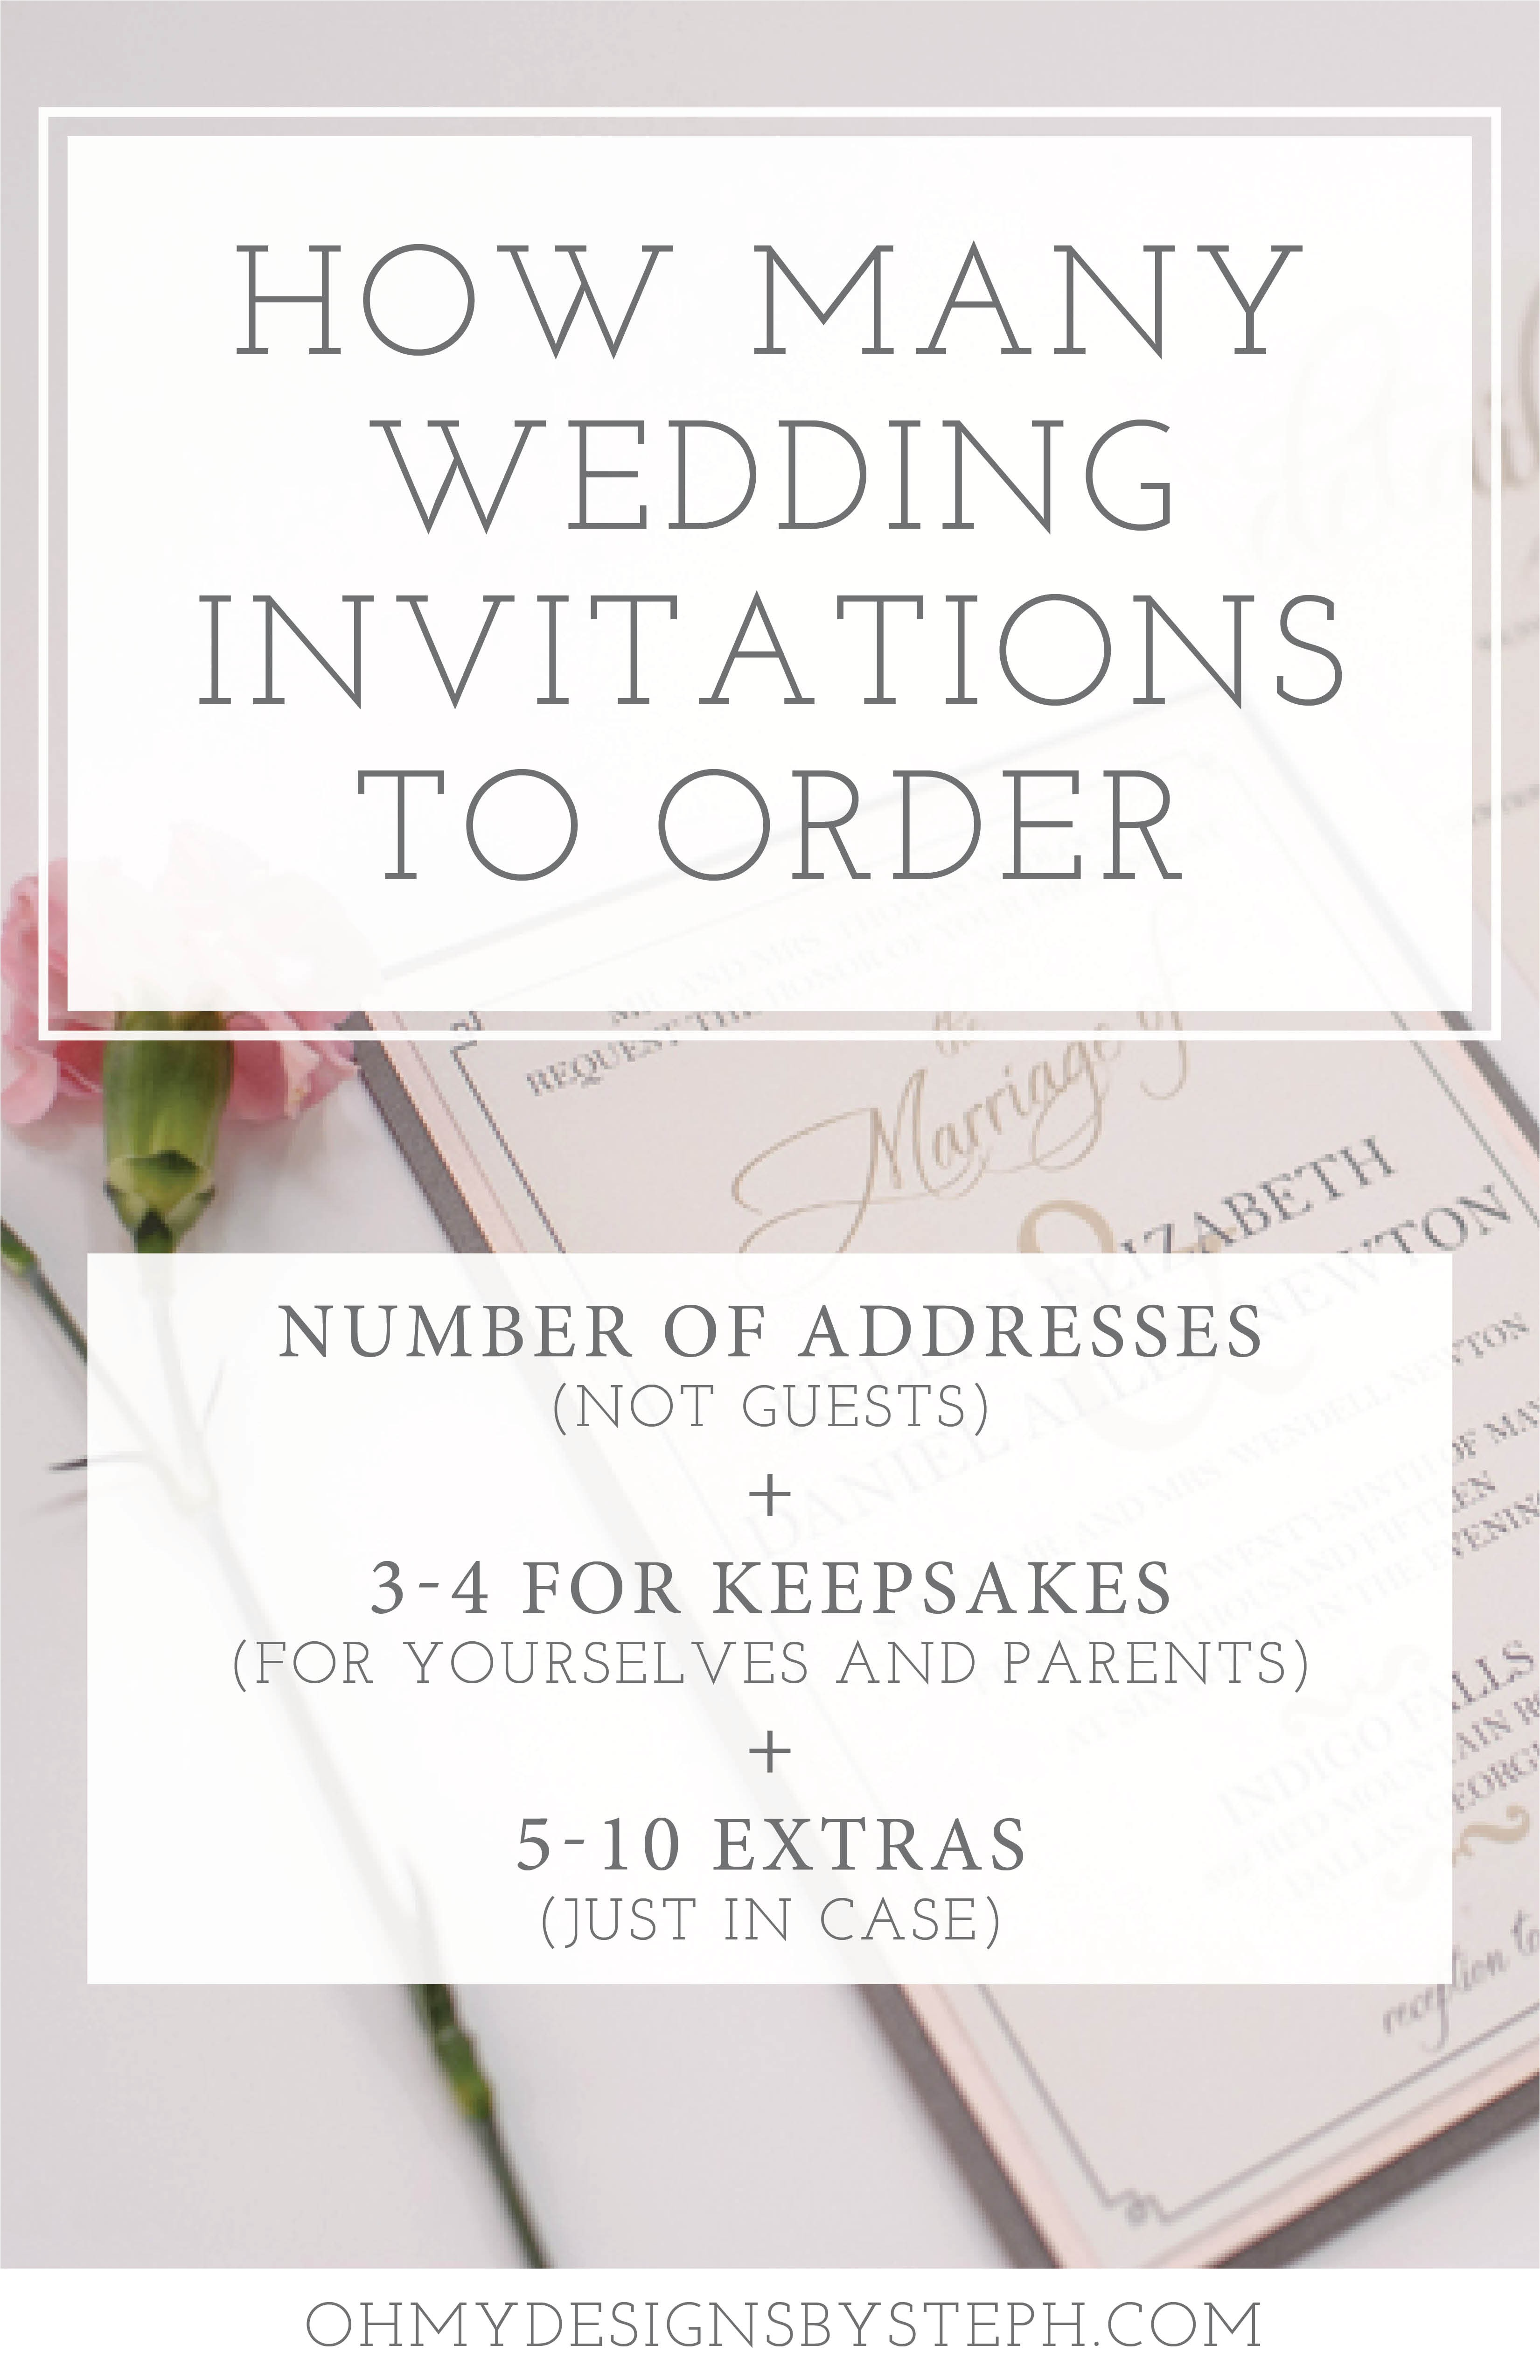 how many wedding invitations should i order